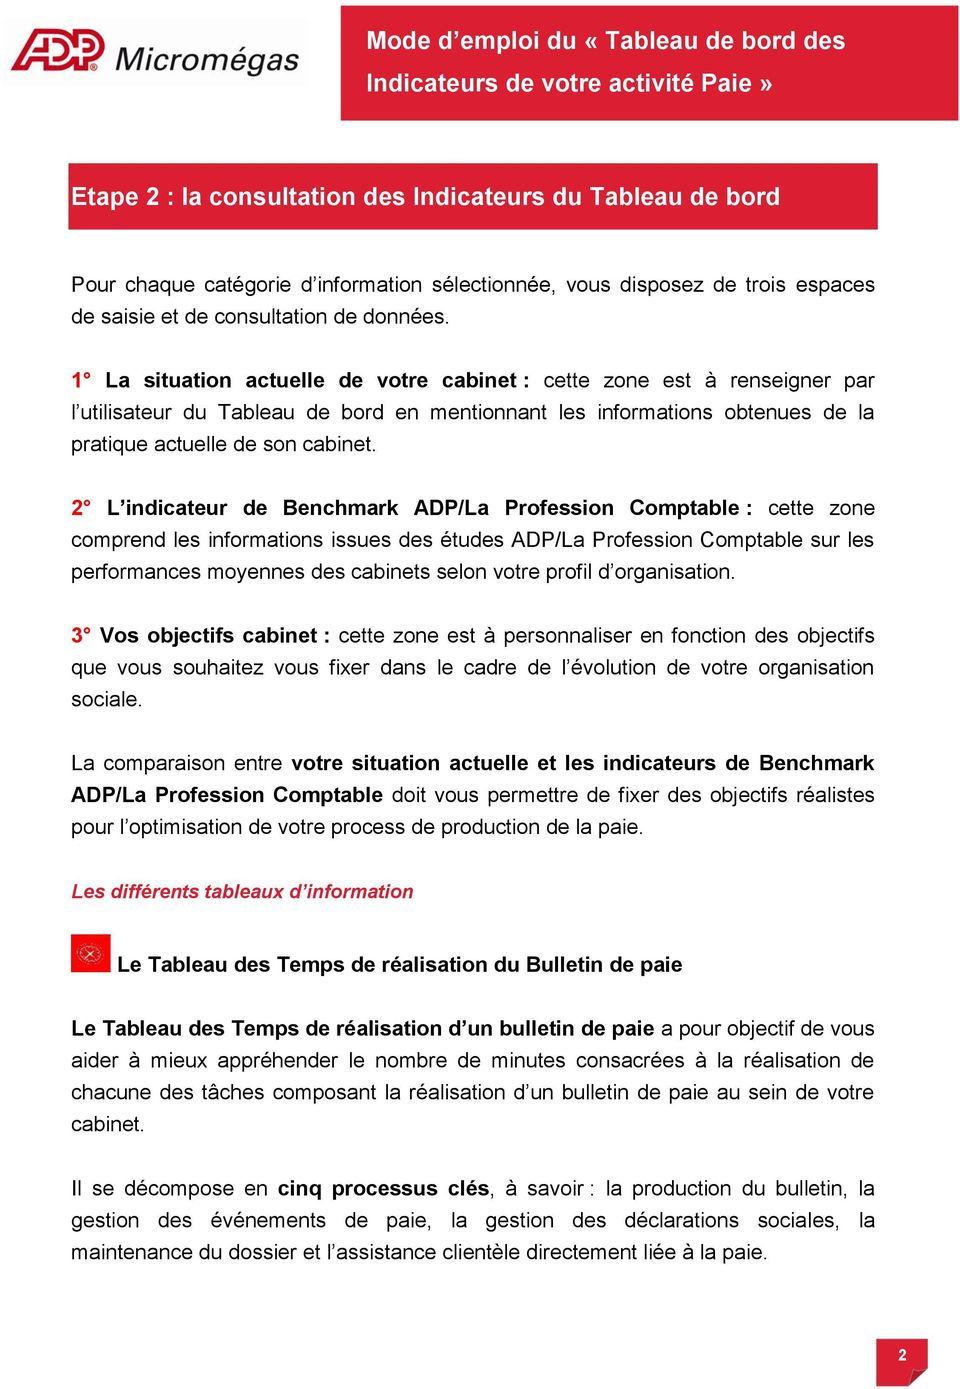 2 L indicateur de Benchmark ADP/La Profession Comptable : cette zone comprend les informations issues des études ADP/La Profession Comptable sur les performances moyennes des cabinets selon votre